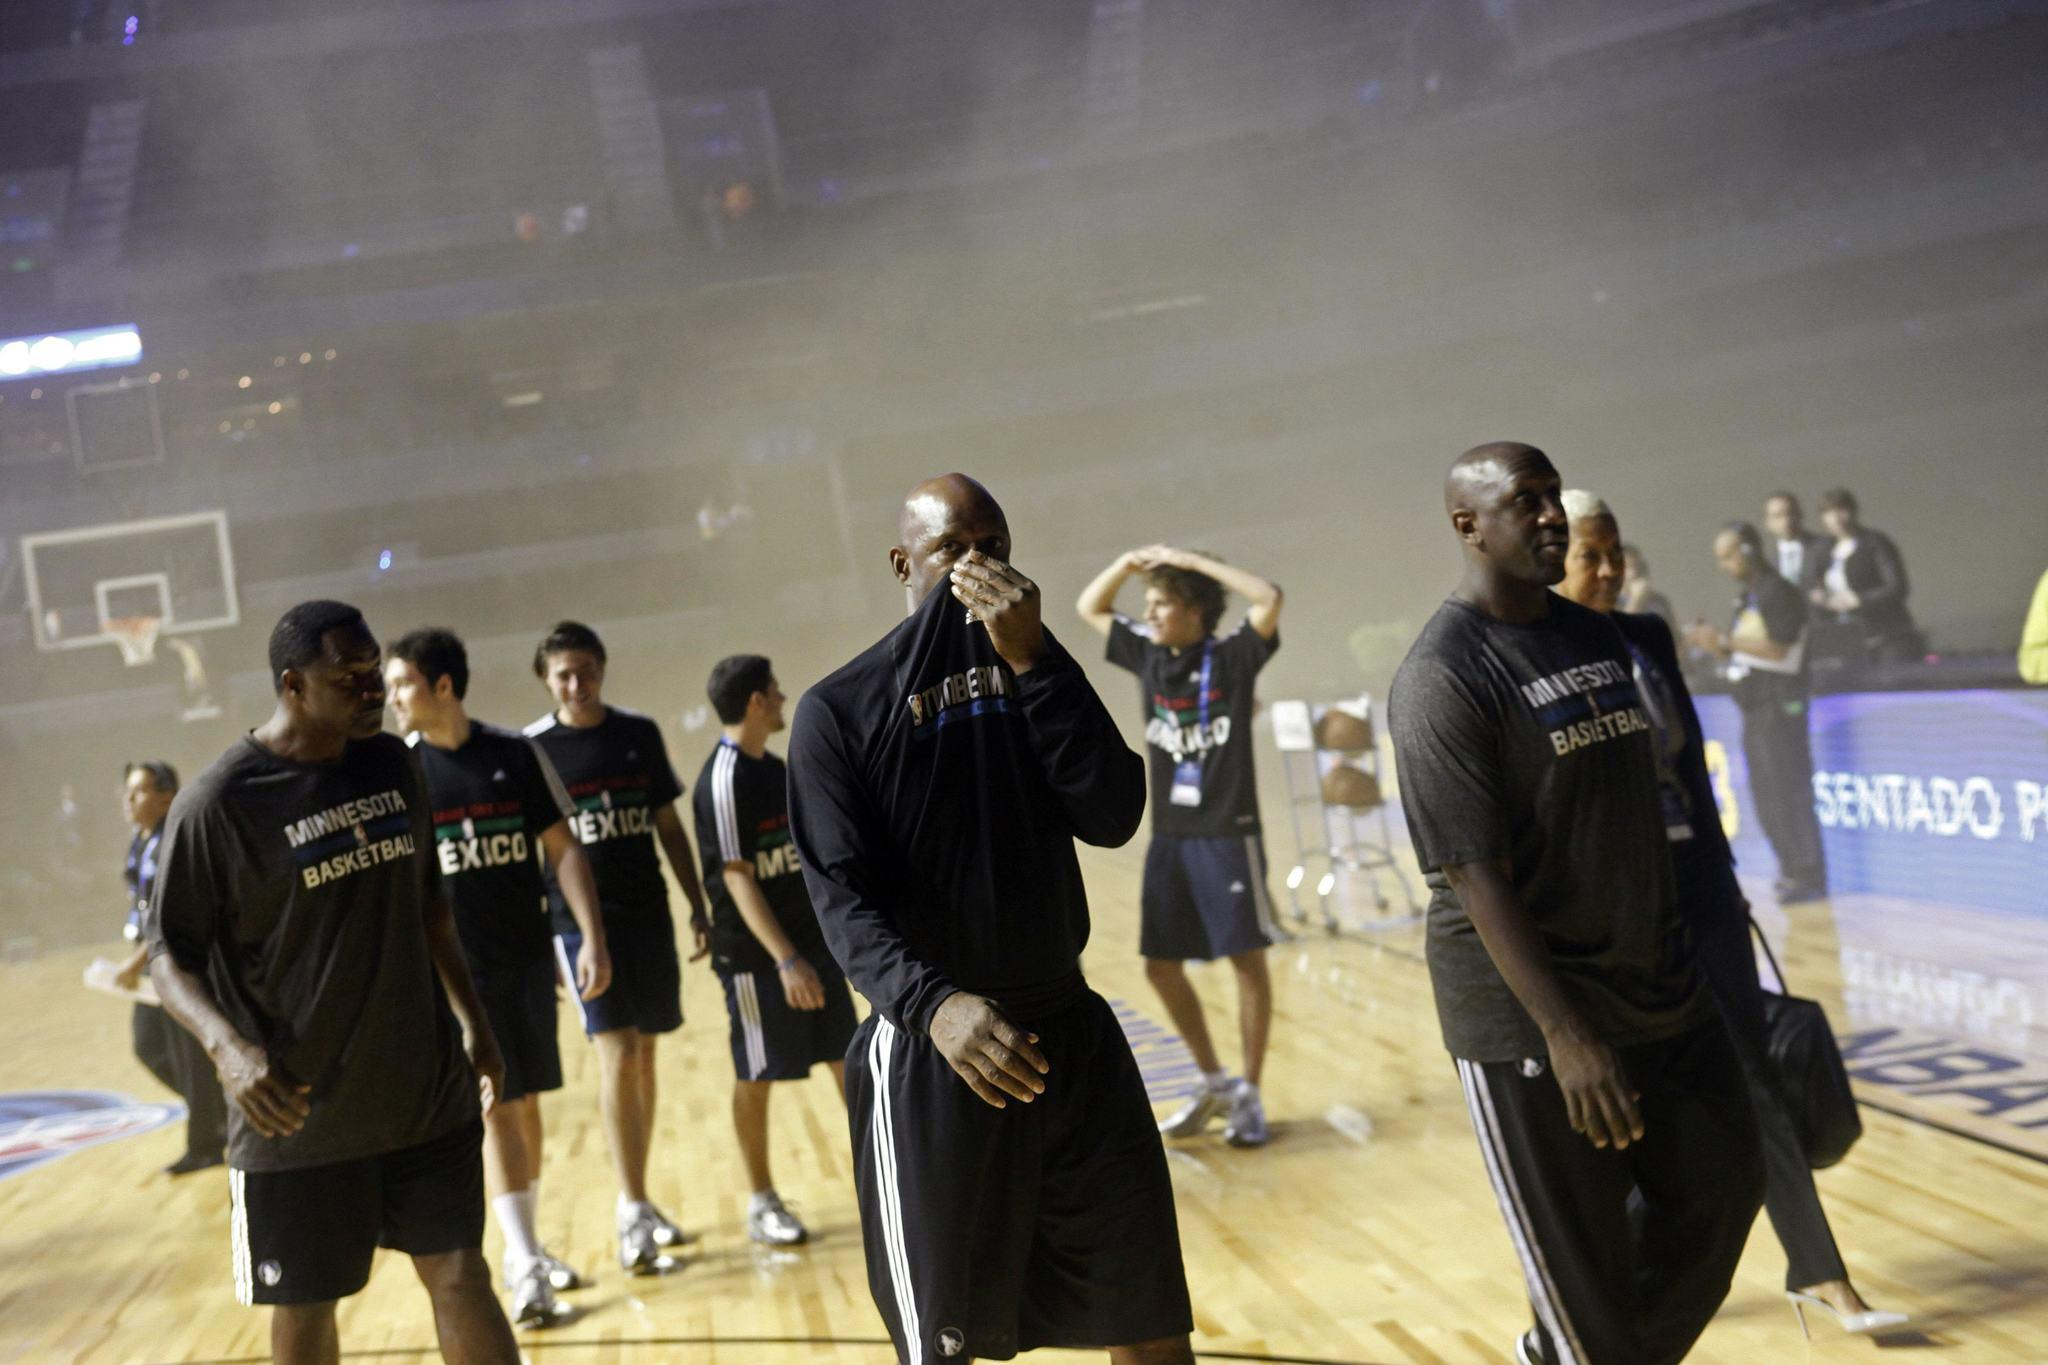 Timberwolves players walk off the court amidst smoke at the Mexico City Arena in Mexico City.